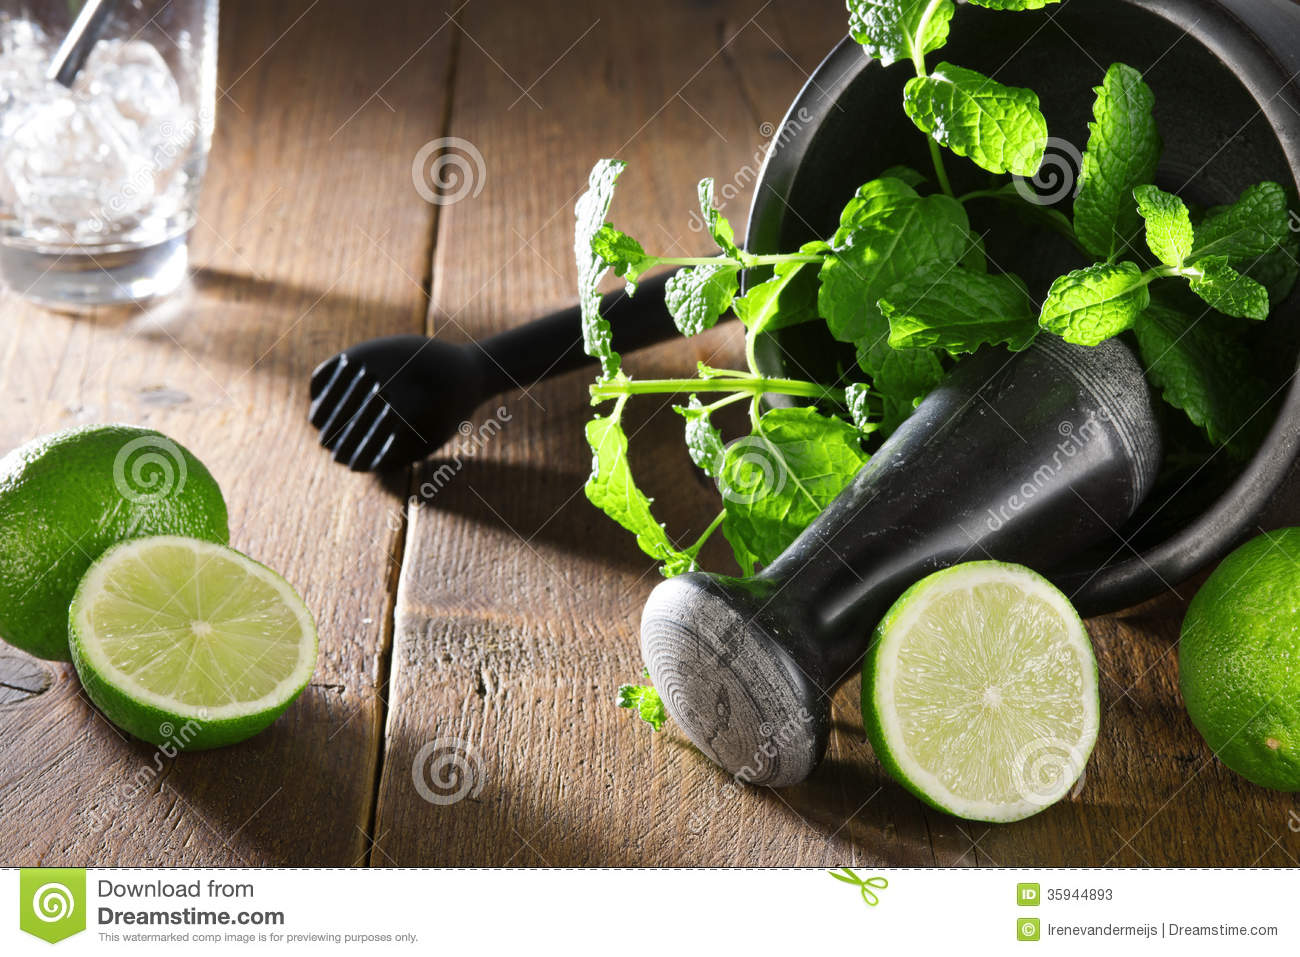 preparation for mojito with ingredients on wooden table. Black Bedroom Furniture Sets. Home Design Ideas